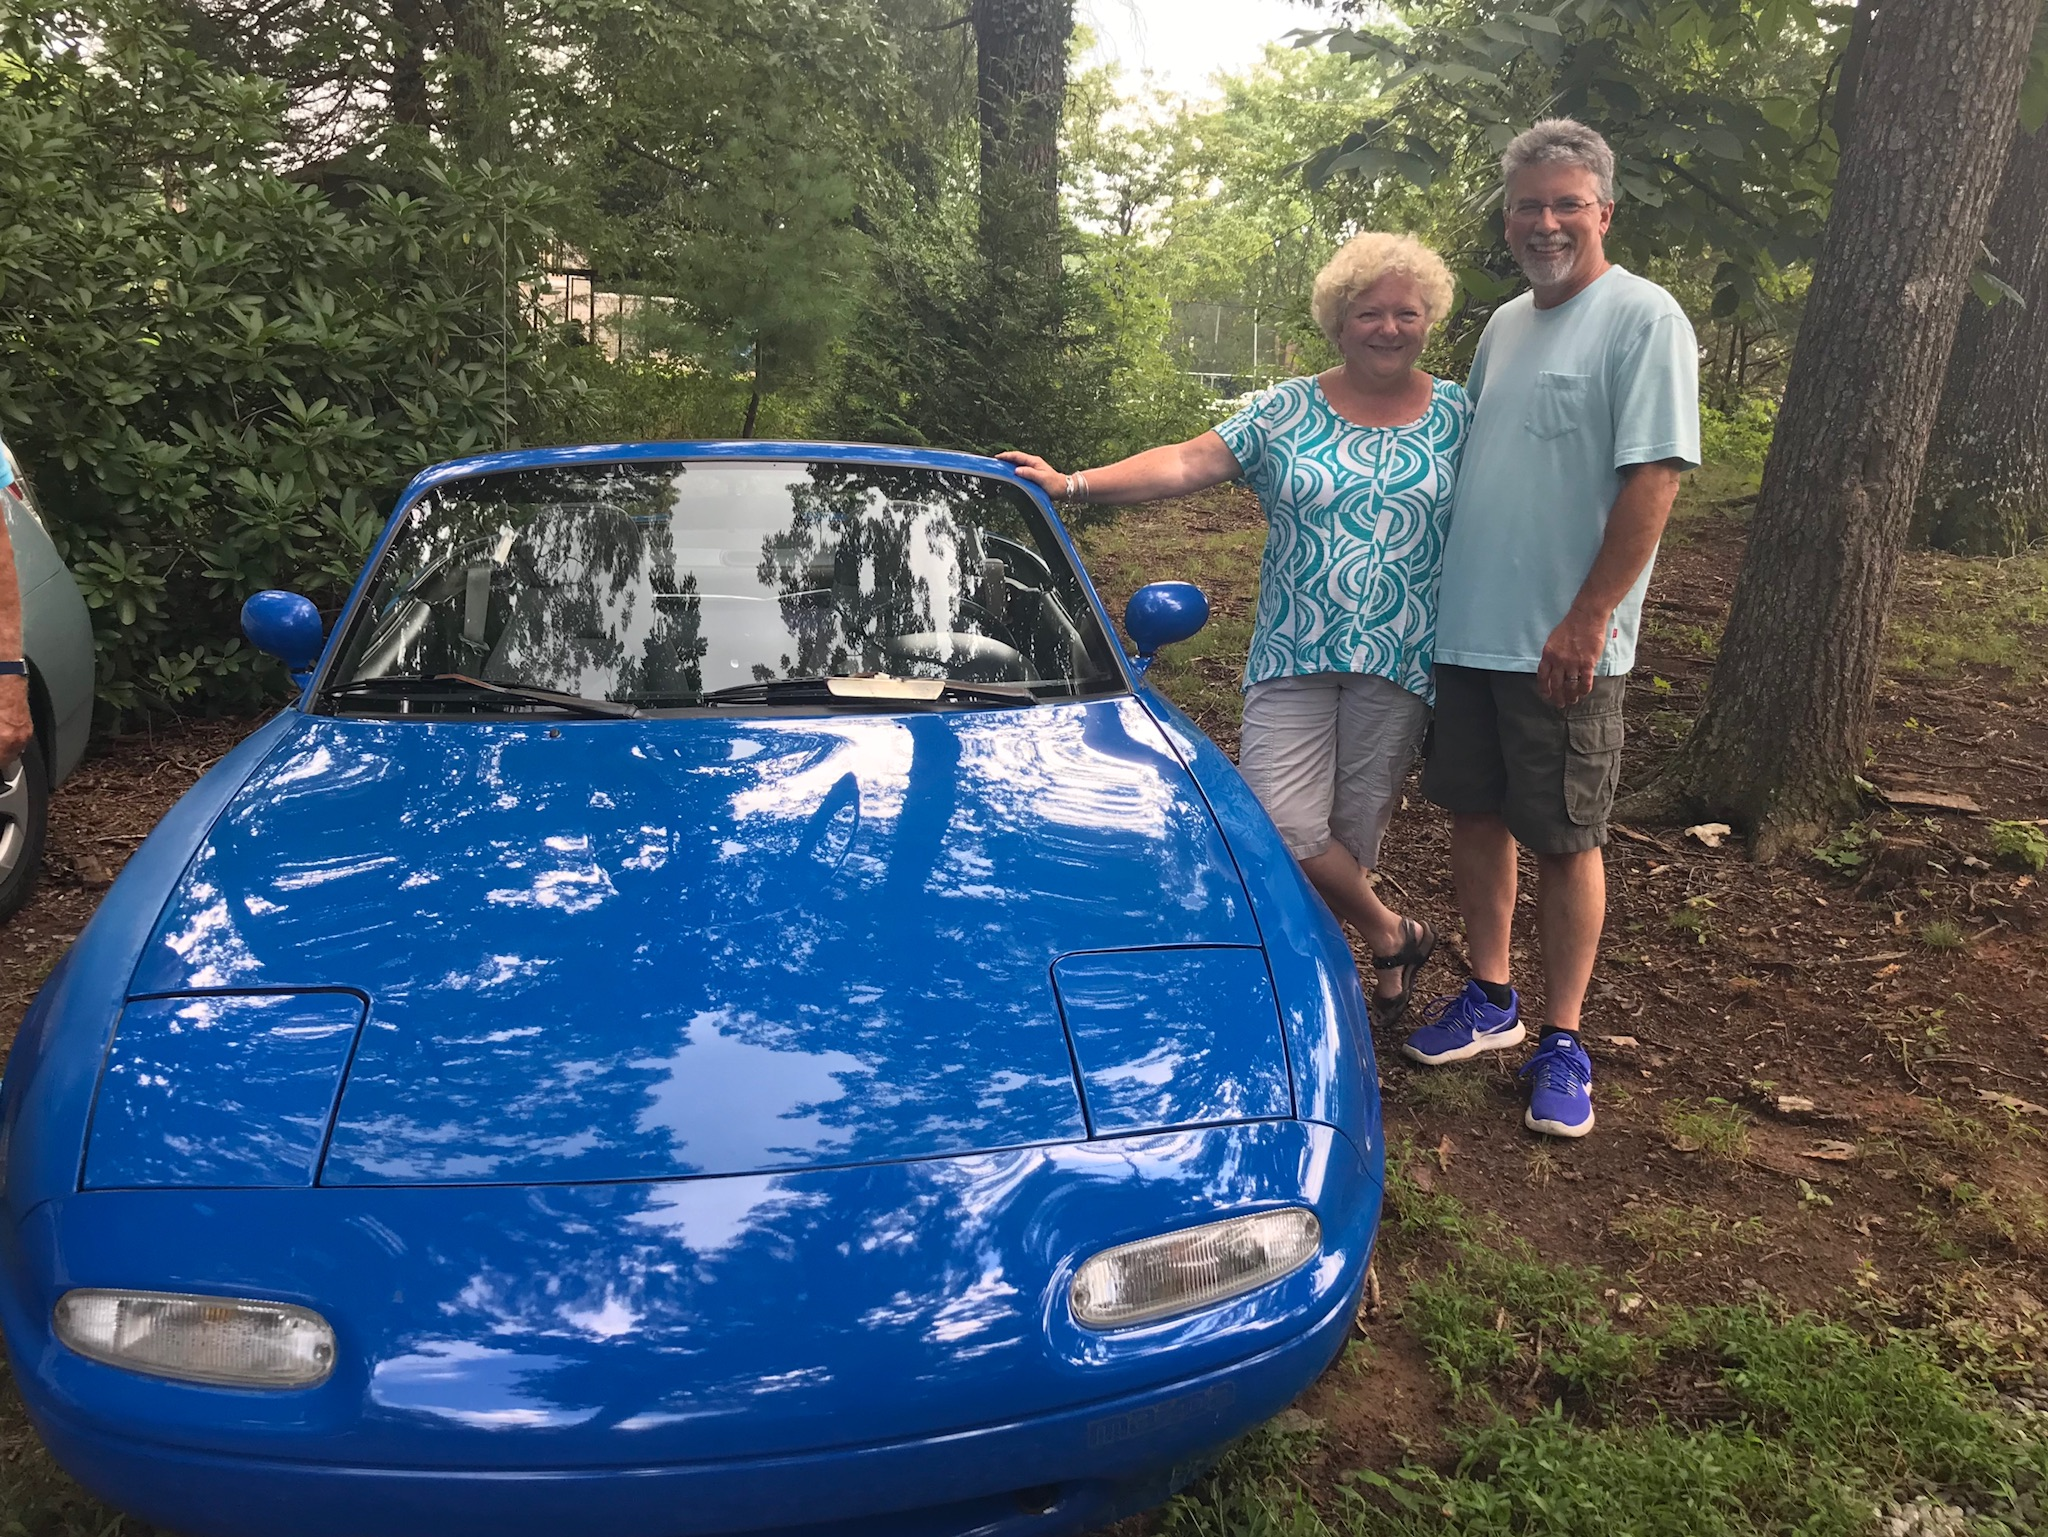 Tena & Lee Hough brought the Miata they had just purchased.